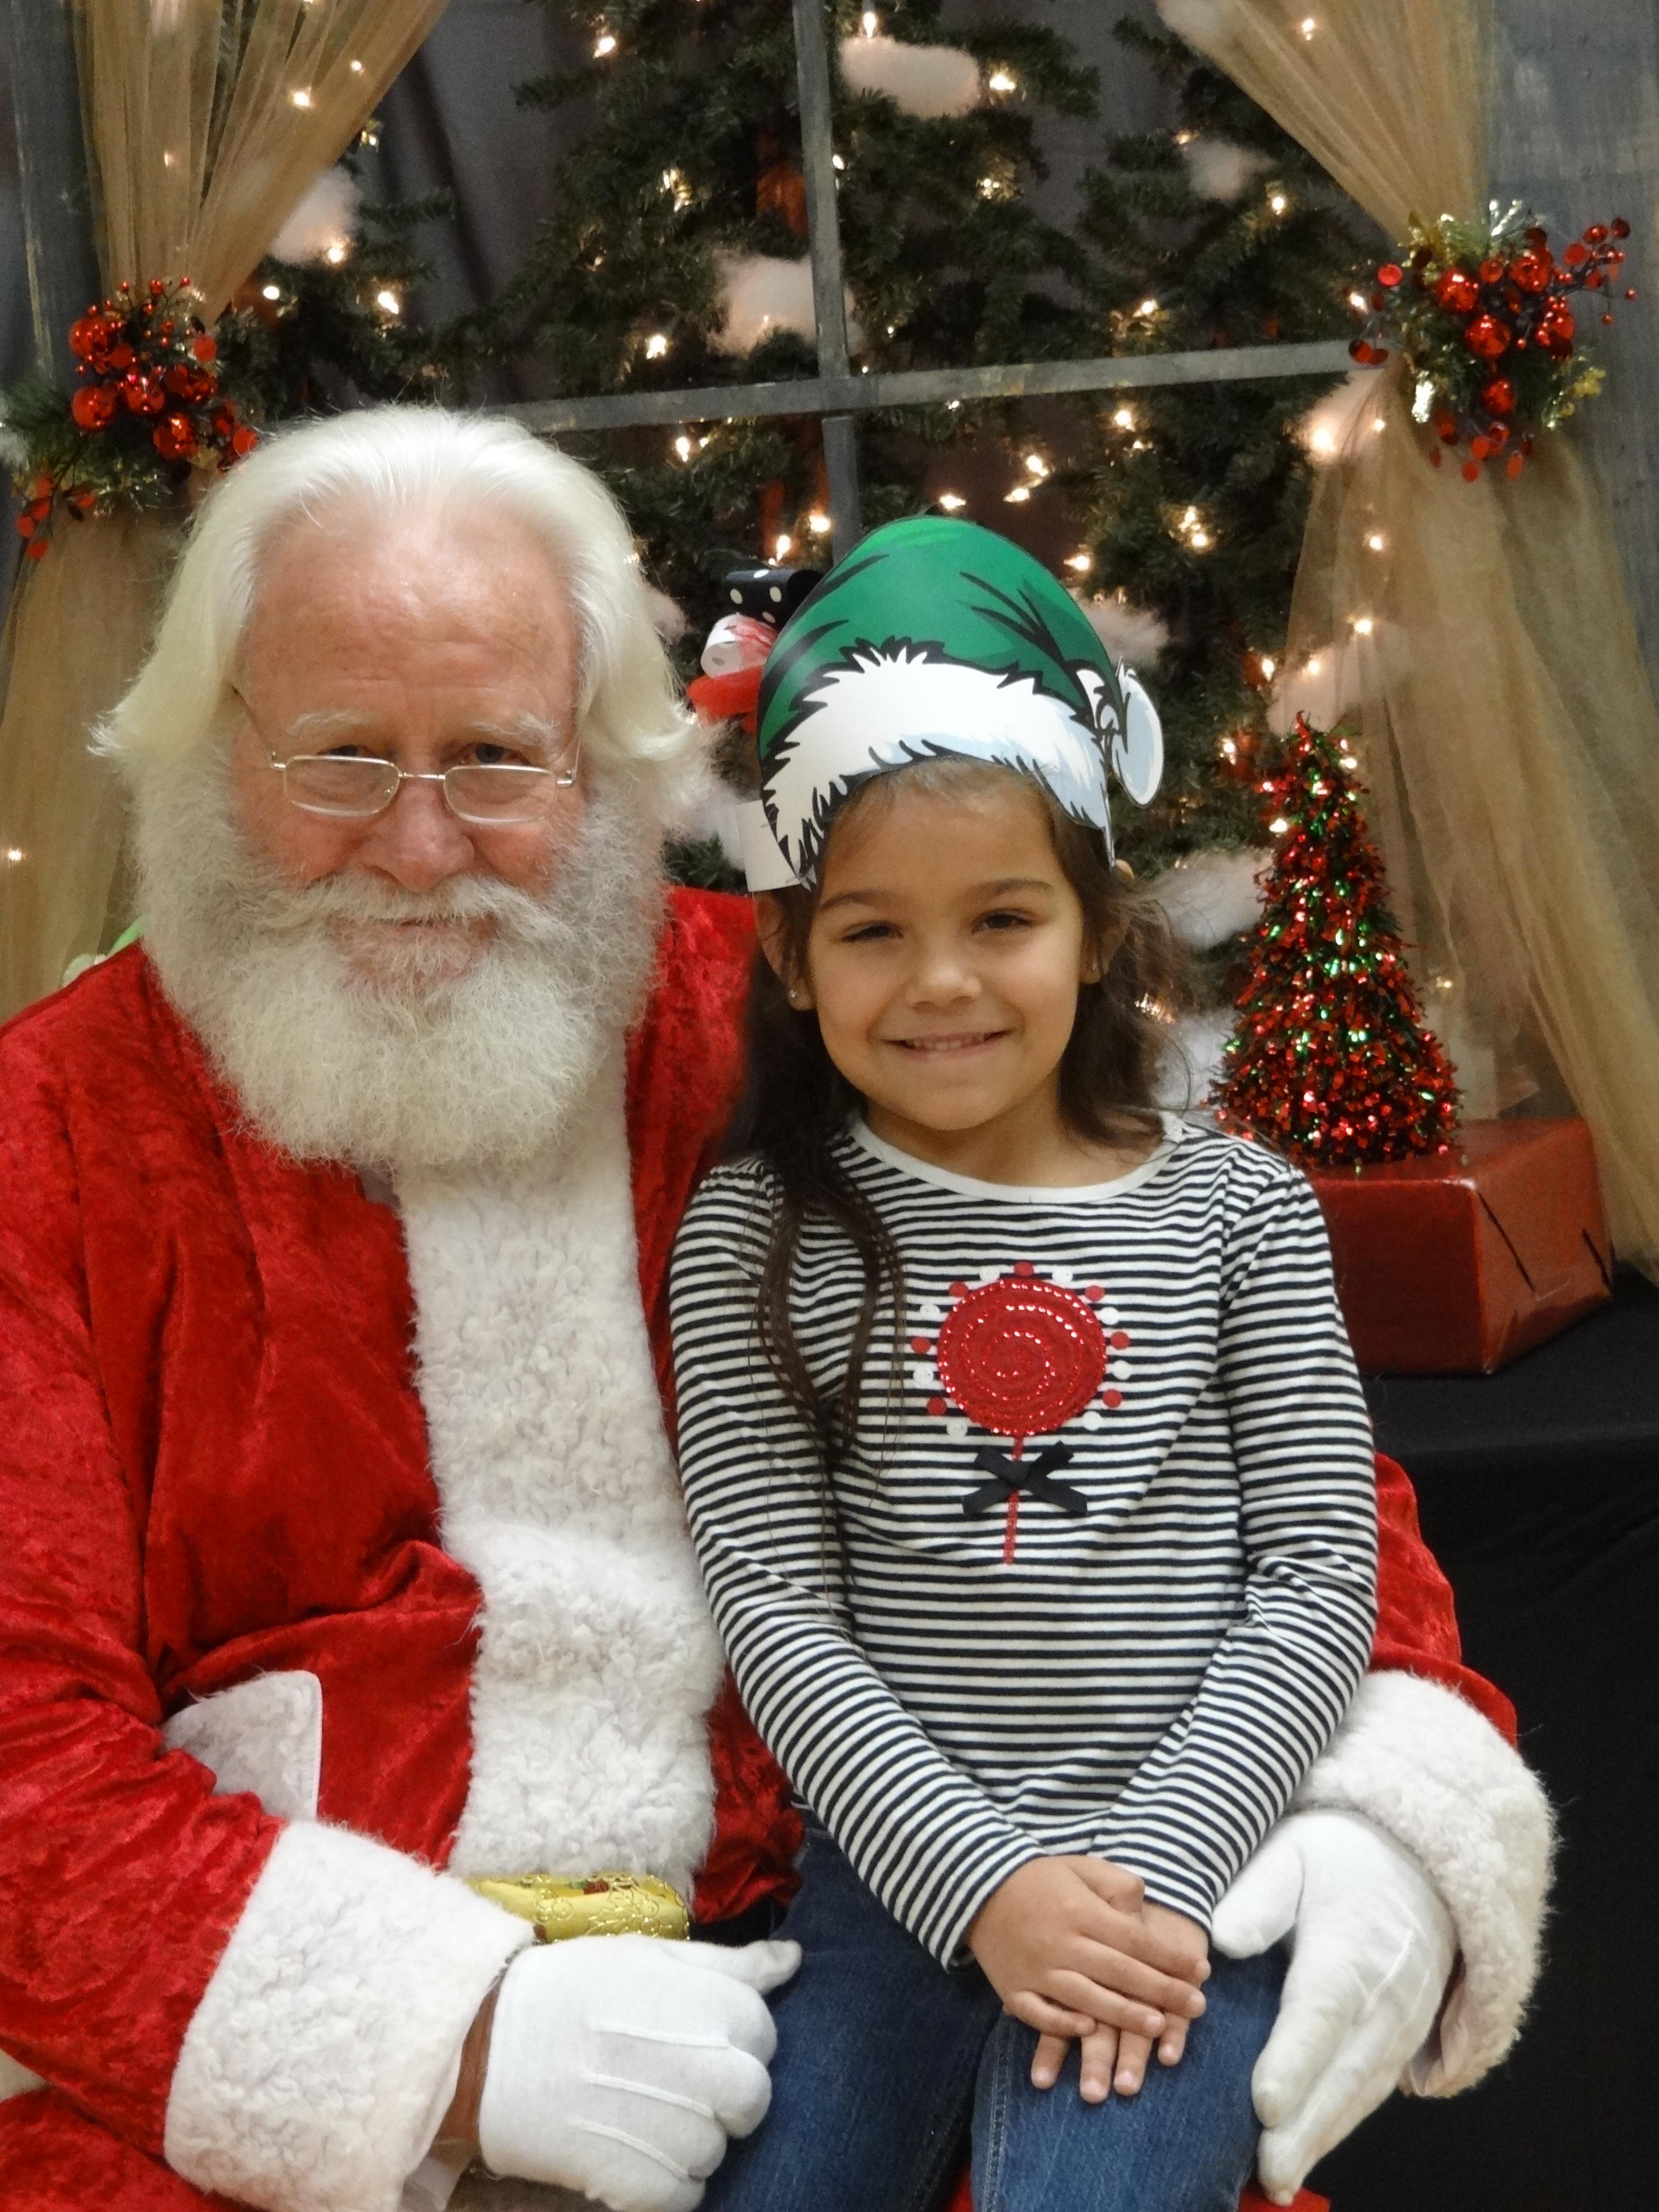 Young girl with elf hat sitting with Santa